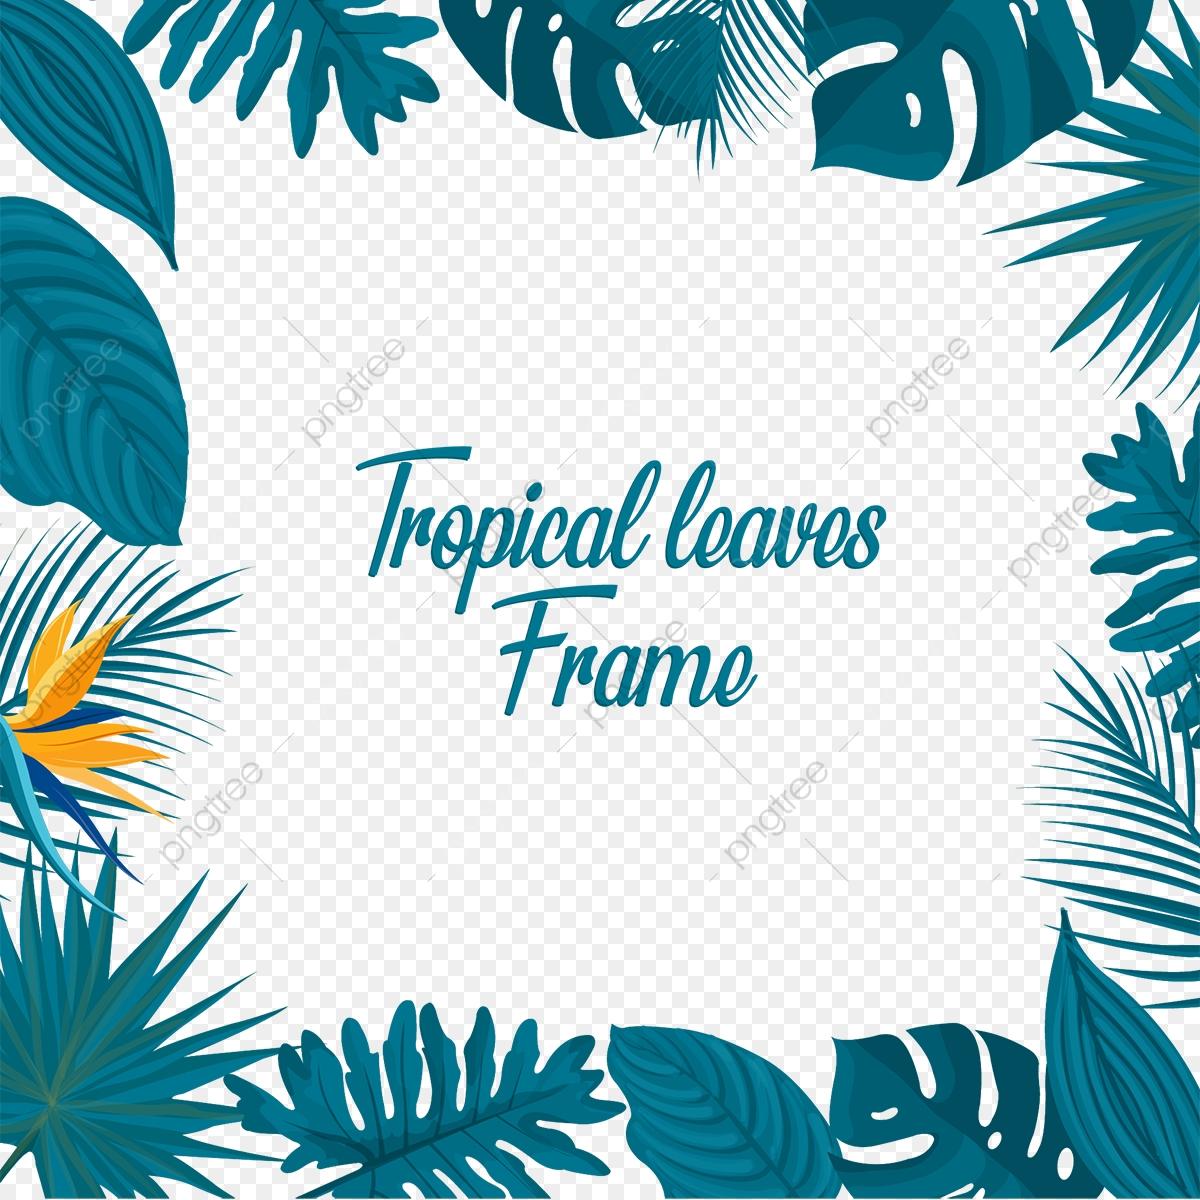 Tropical Leaves Border Flyer Poster Banner Png And Vector With Transparent Background For Free Download Search more hd transparent tropical leaves image on kindpng. https pngtree com freepng tropical leaves border 4235192 html